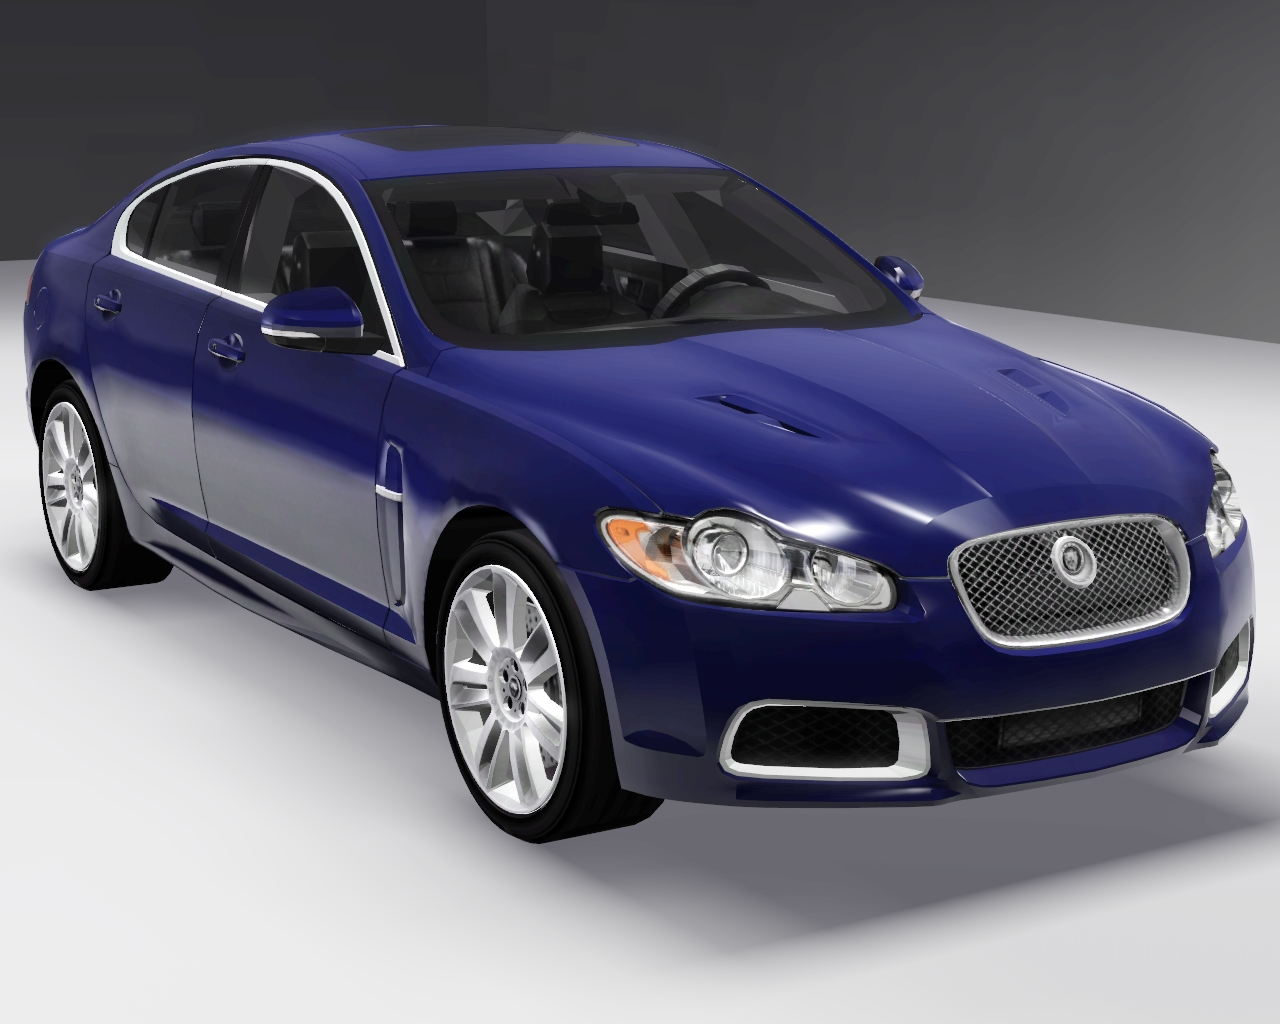 2010 Jaguar XFR by Fresh-Prince